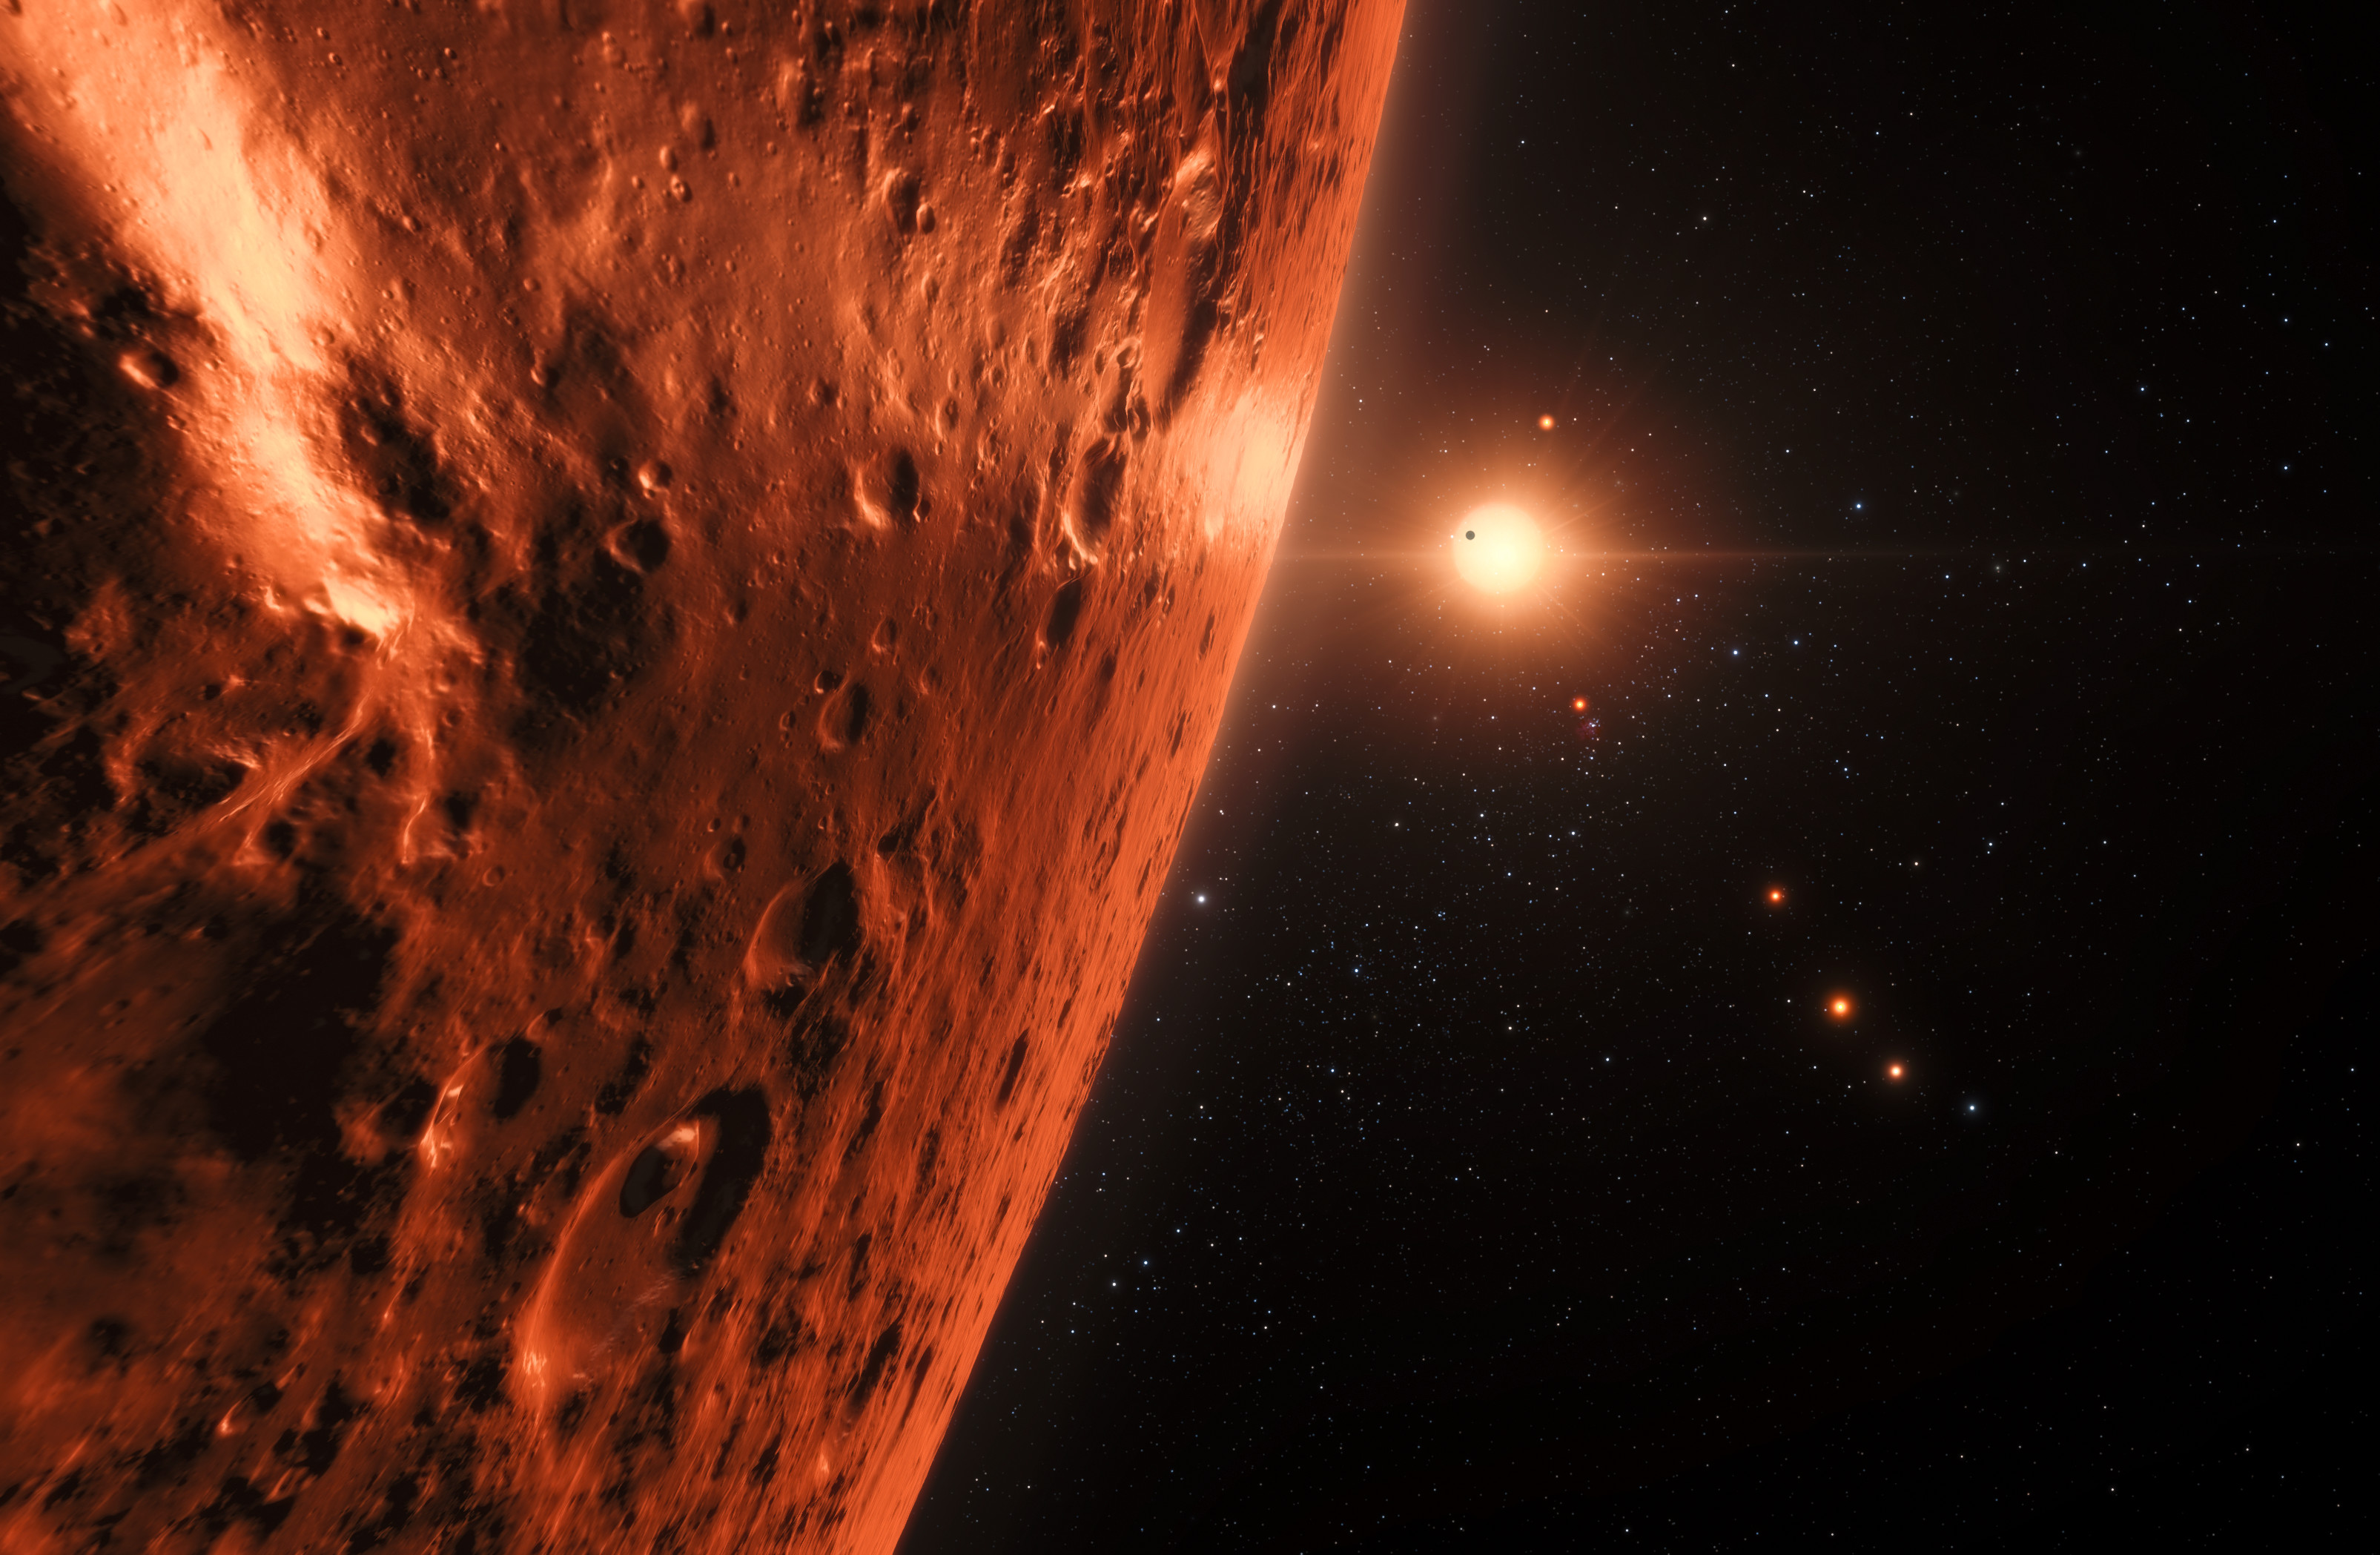 Artists Impression Of The TRAPPIST 1 Planetary System